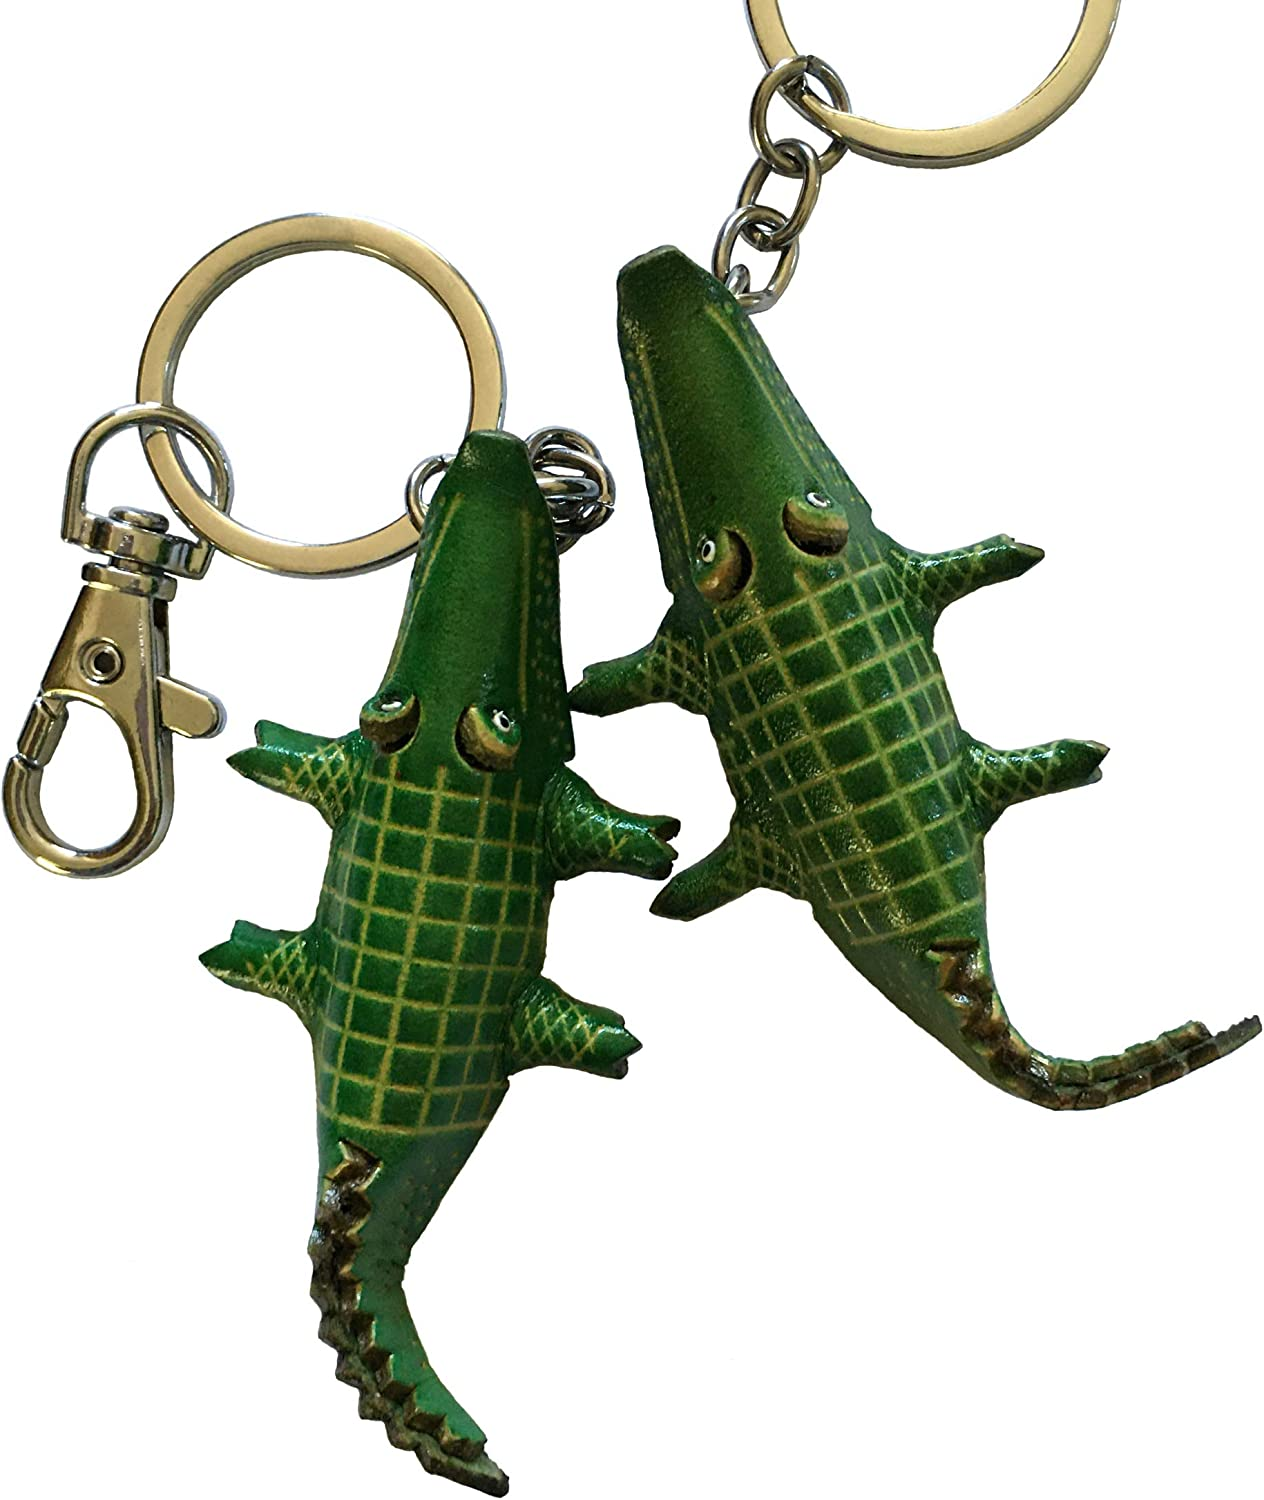 BPLeathercraft Leather Alligator Key Chains Green a Pair of Alligator Design Bag Charm 2 Pieces